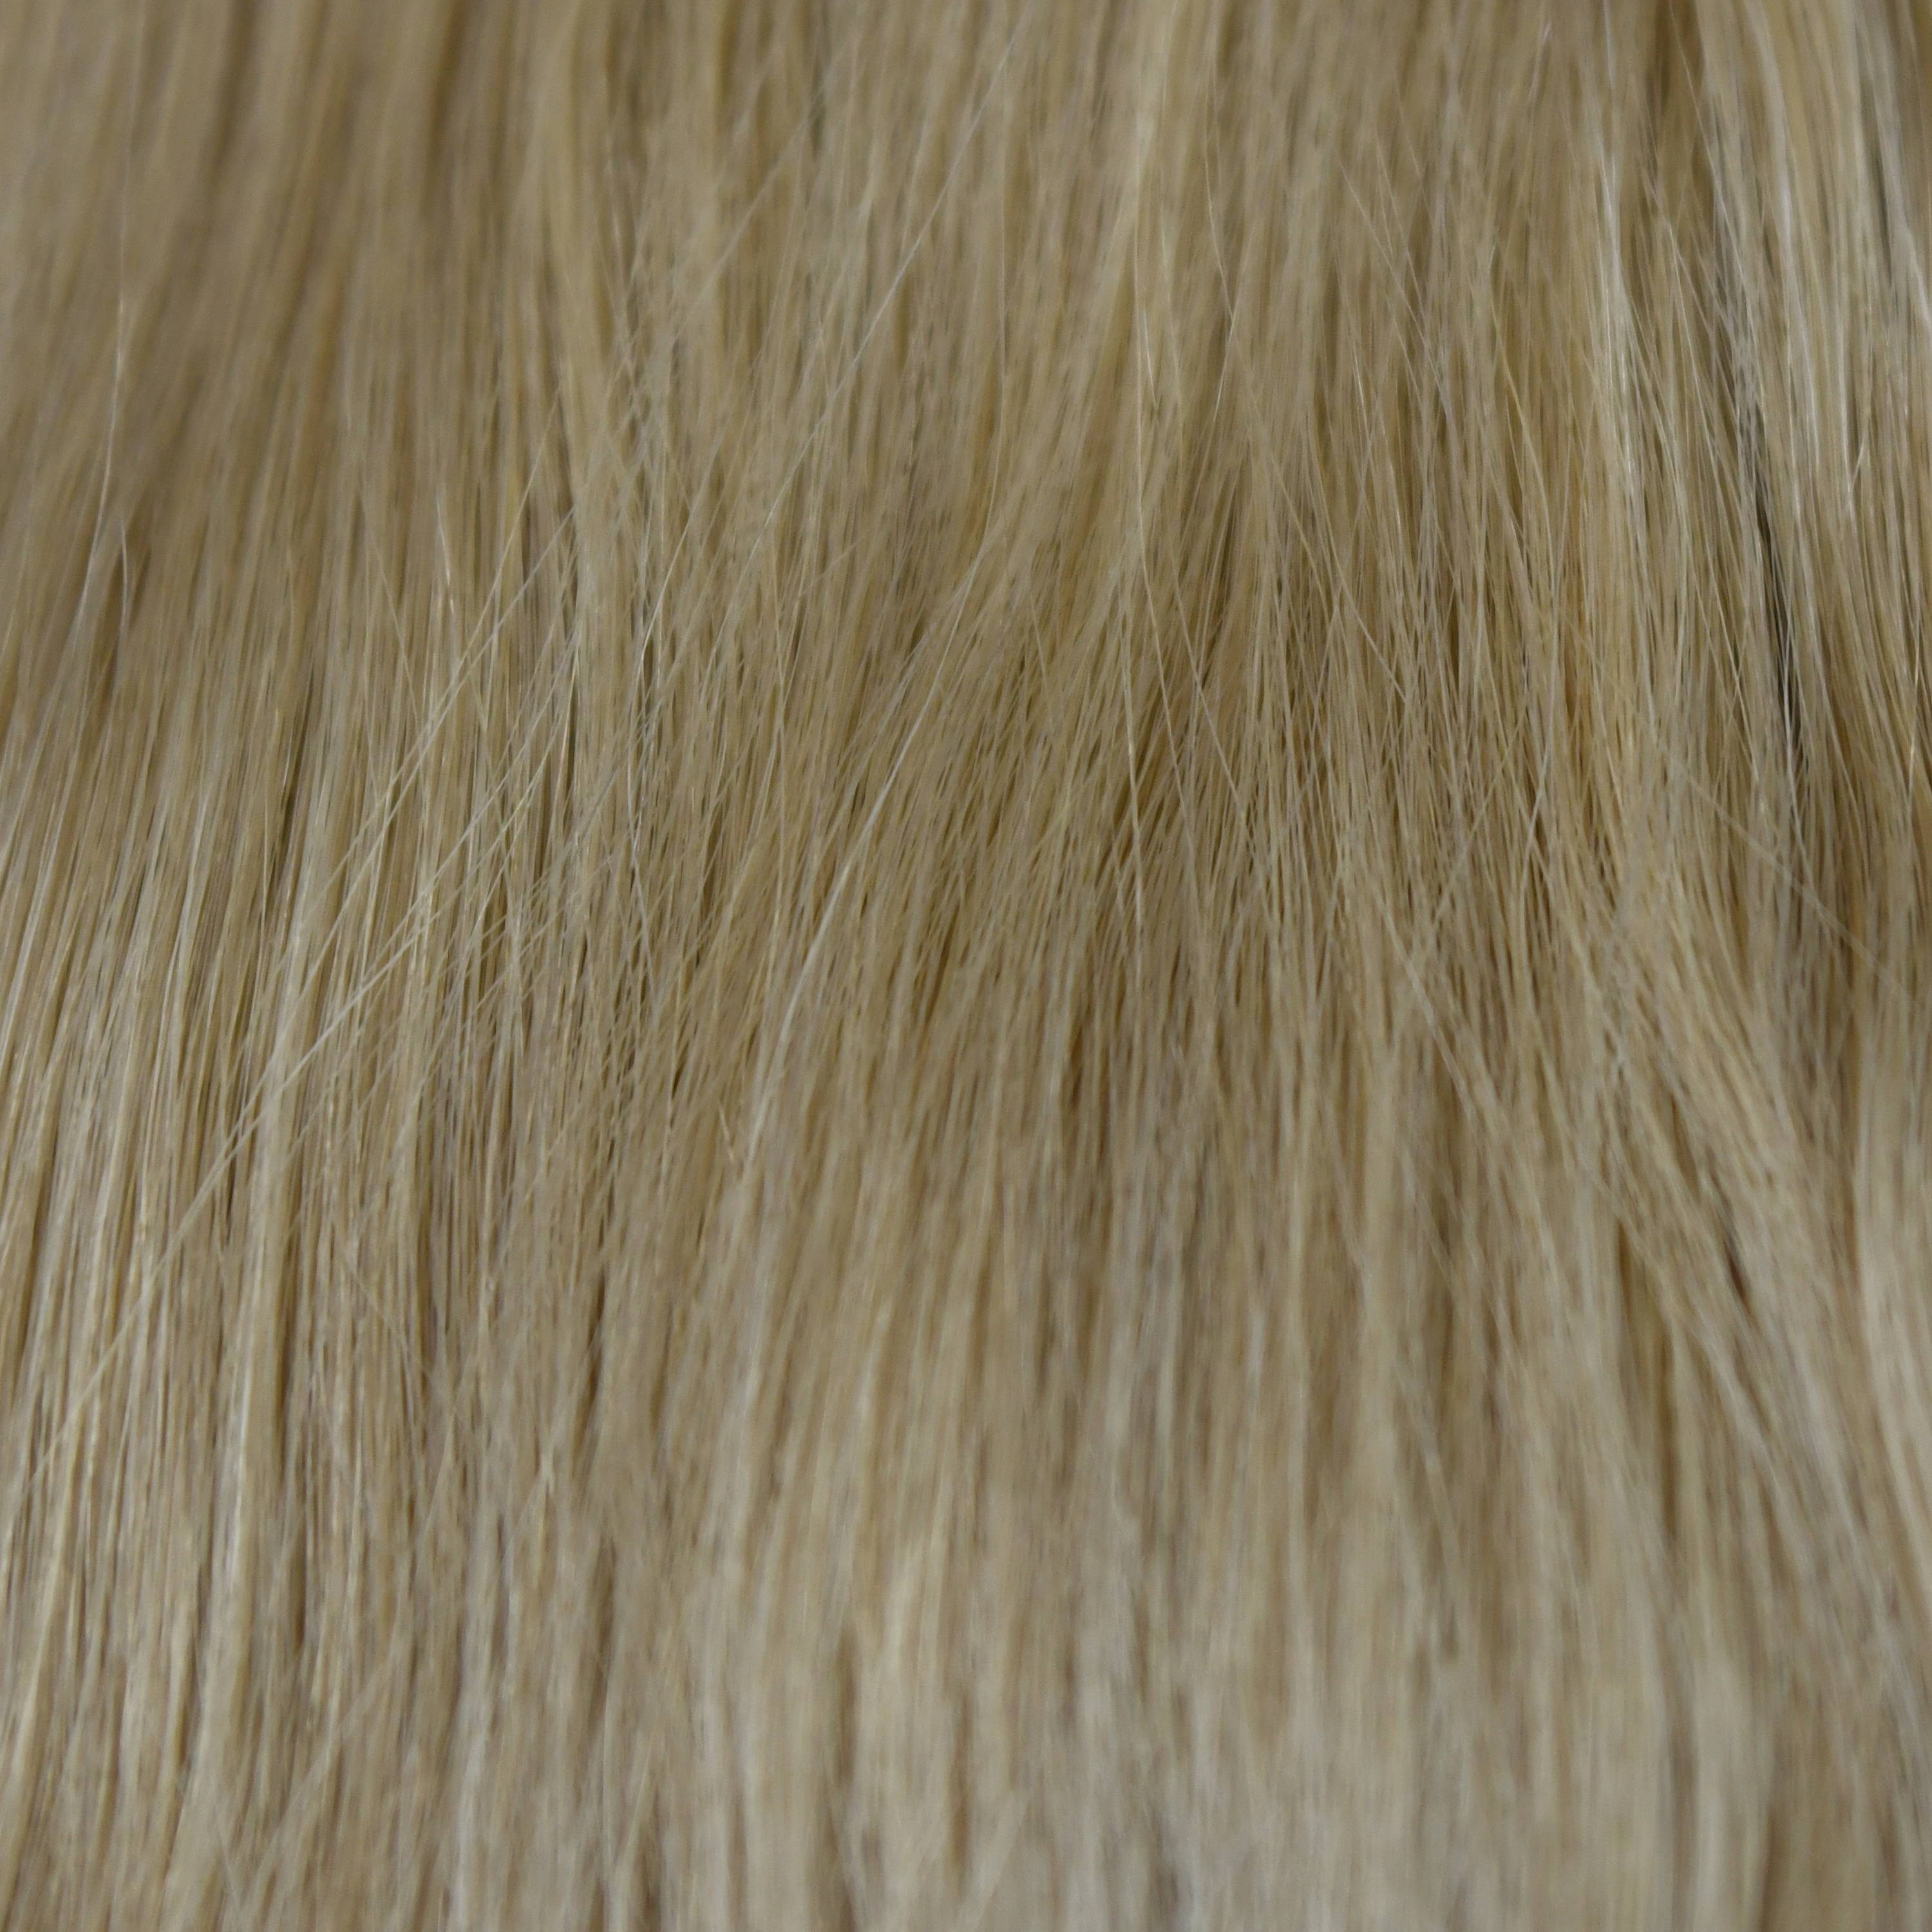 dirty blond color hair help to choose hair extensions color in hair color chart